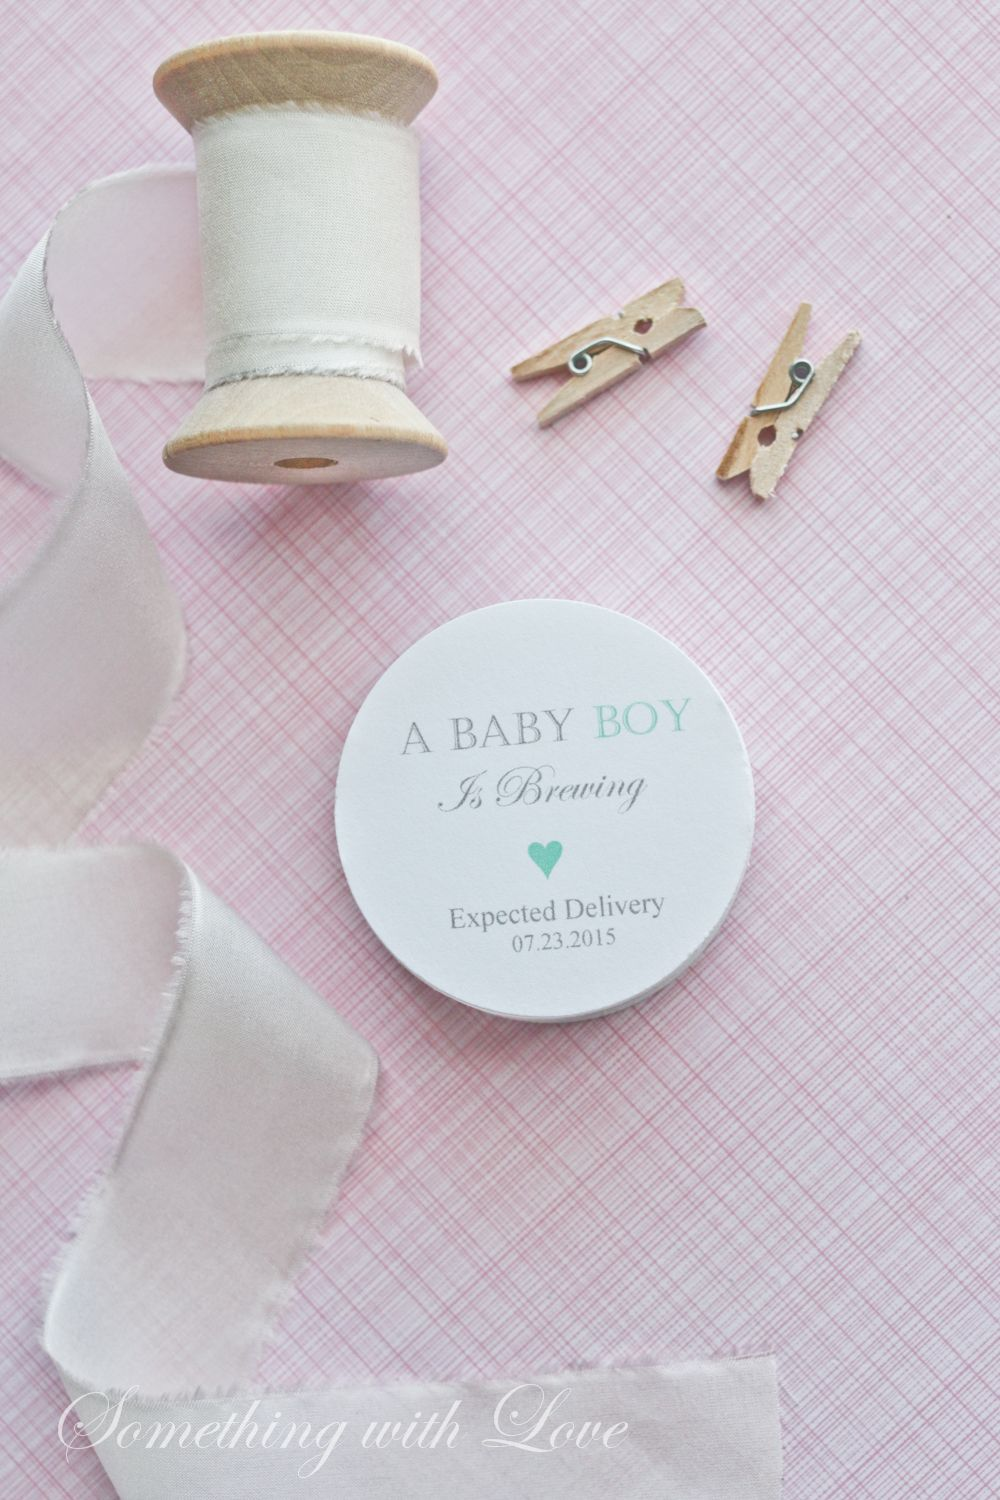 These baby shower favor tags are perfect for coffee or tea favors.  #favortags #babyshower #babyshowerinspiration #mintbabyshower www.somethingwithlove.etsy.com